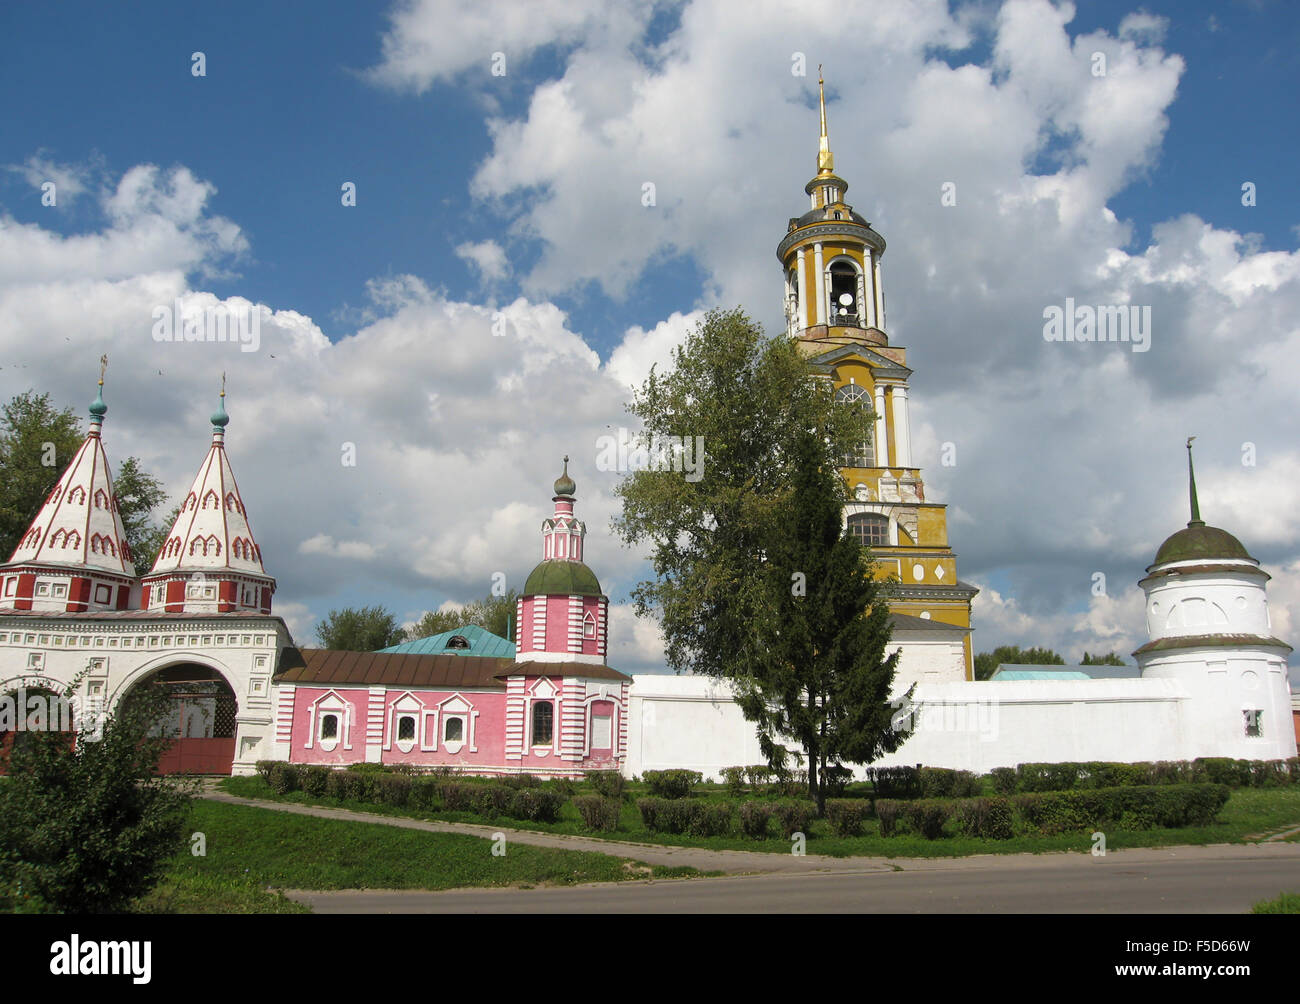 Suzdal, Russia - August 18, 2006: orthodox monastery in historical town Suzdal. - Stock Image